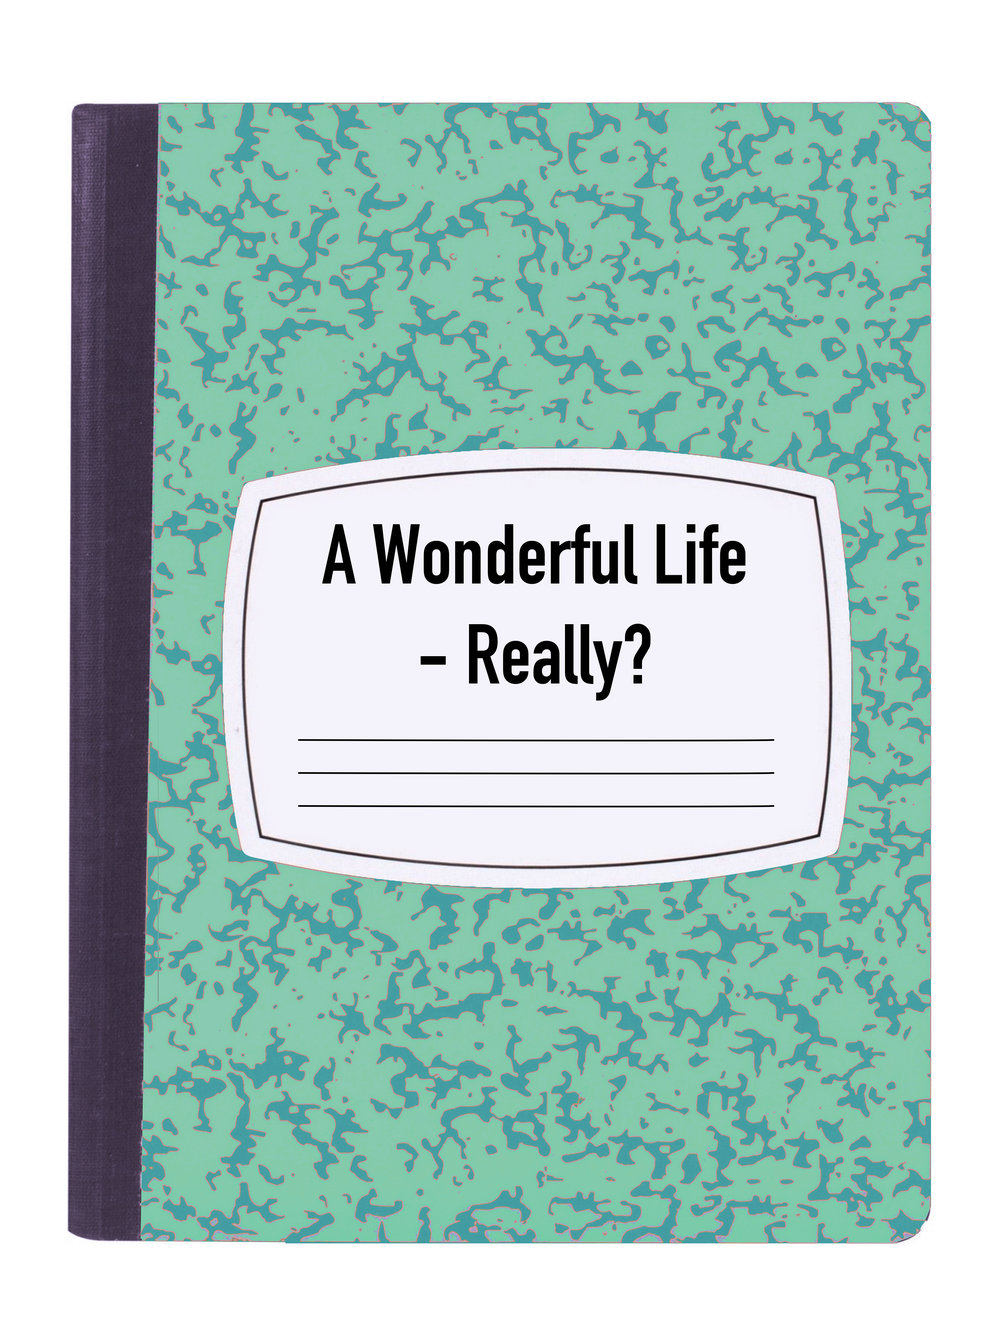 A WONDERFUL LIFE - REALLY?